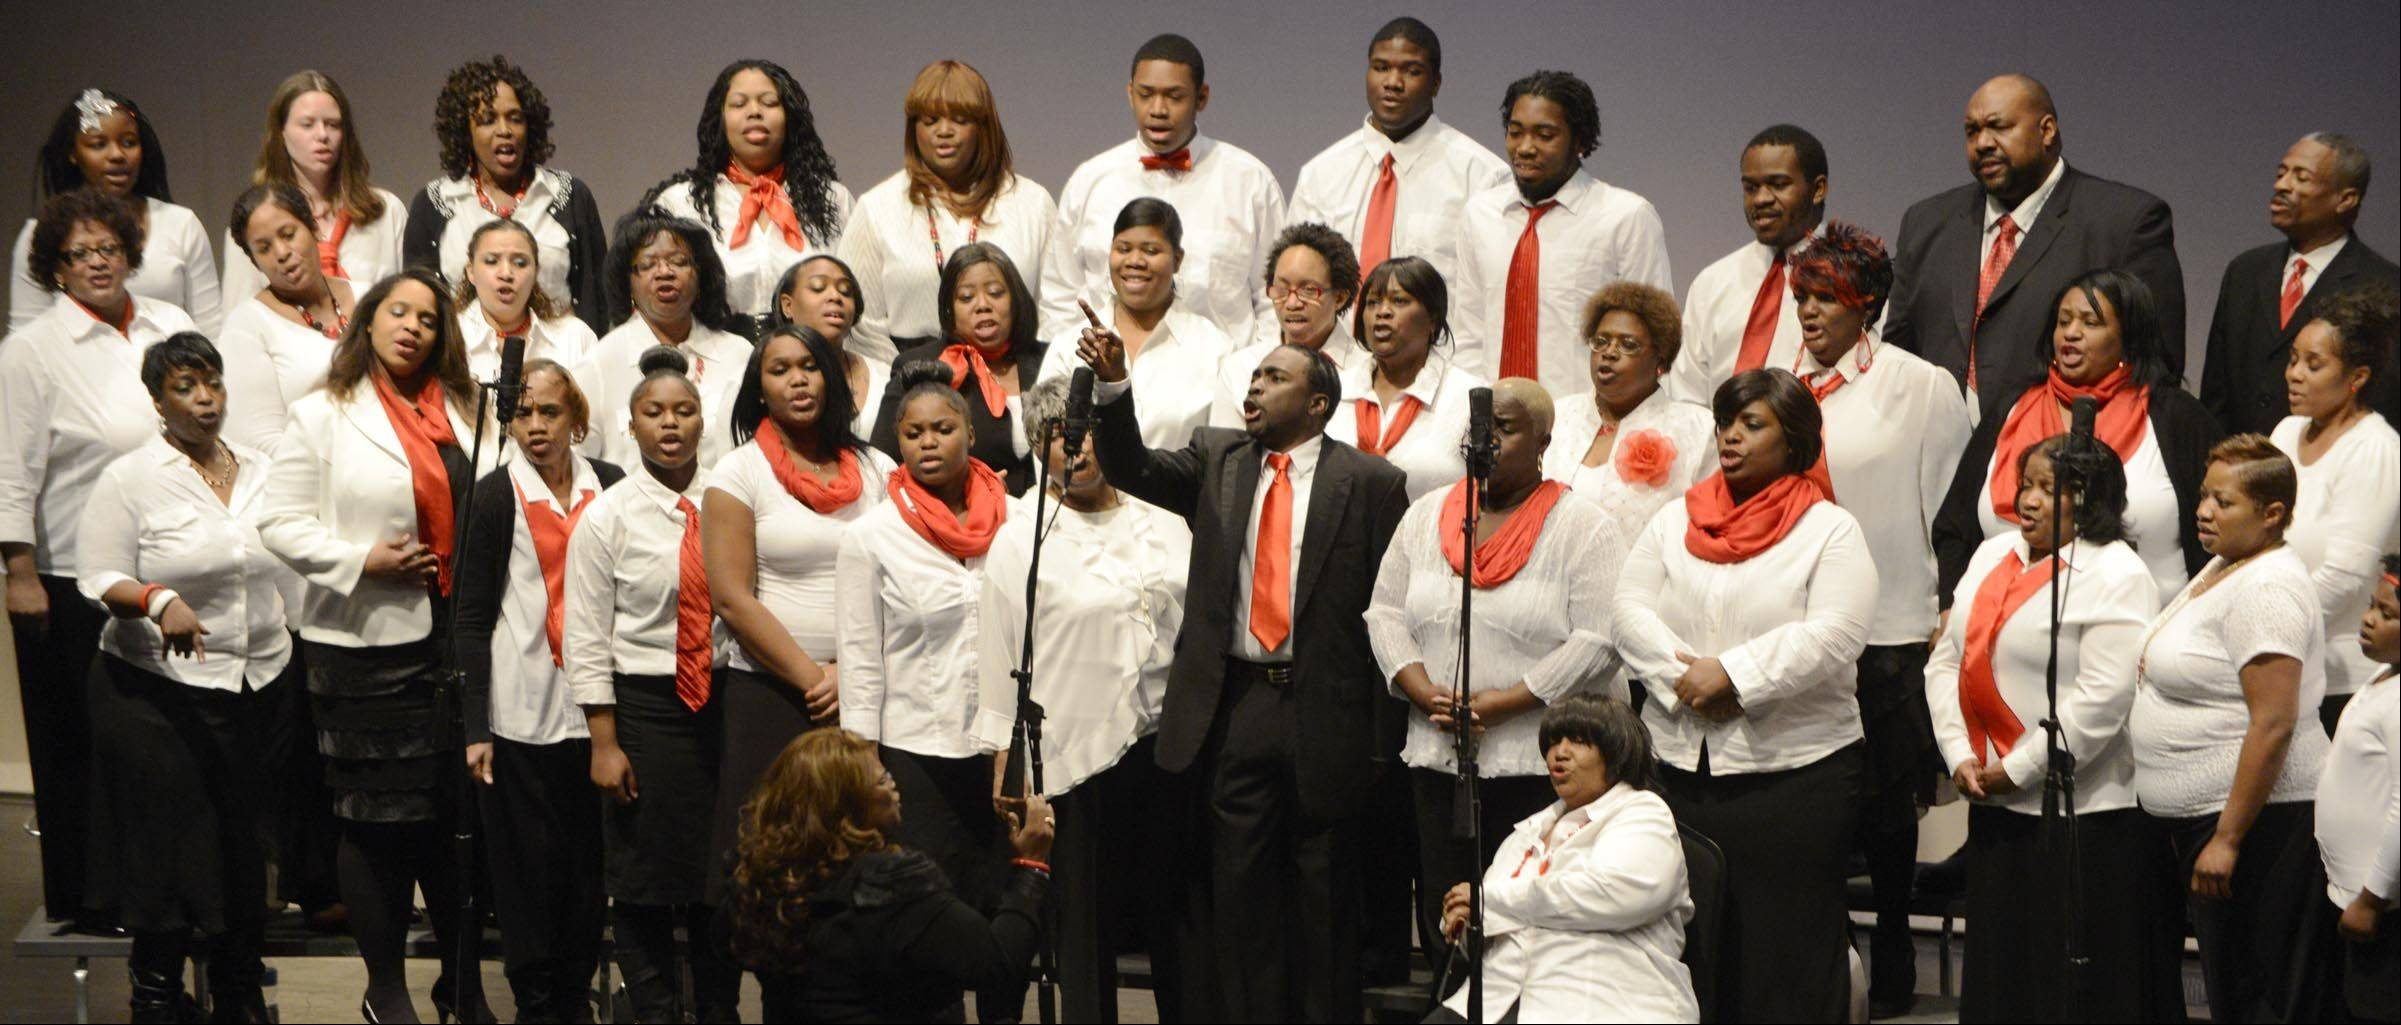 The Elgin Community Choir performs Sunday during the 29th Annual Dr. Martin Luther King, Jr. program at the Hemmens Auditorium in Elgin.